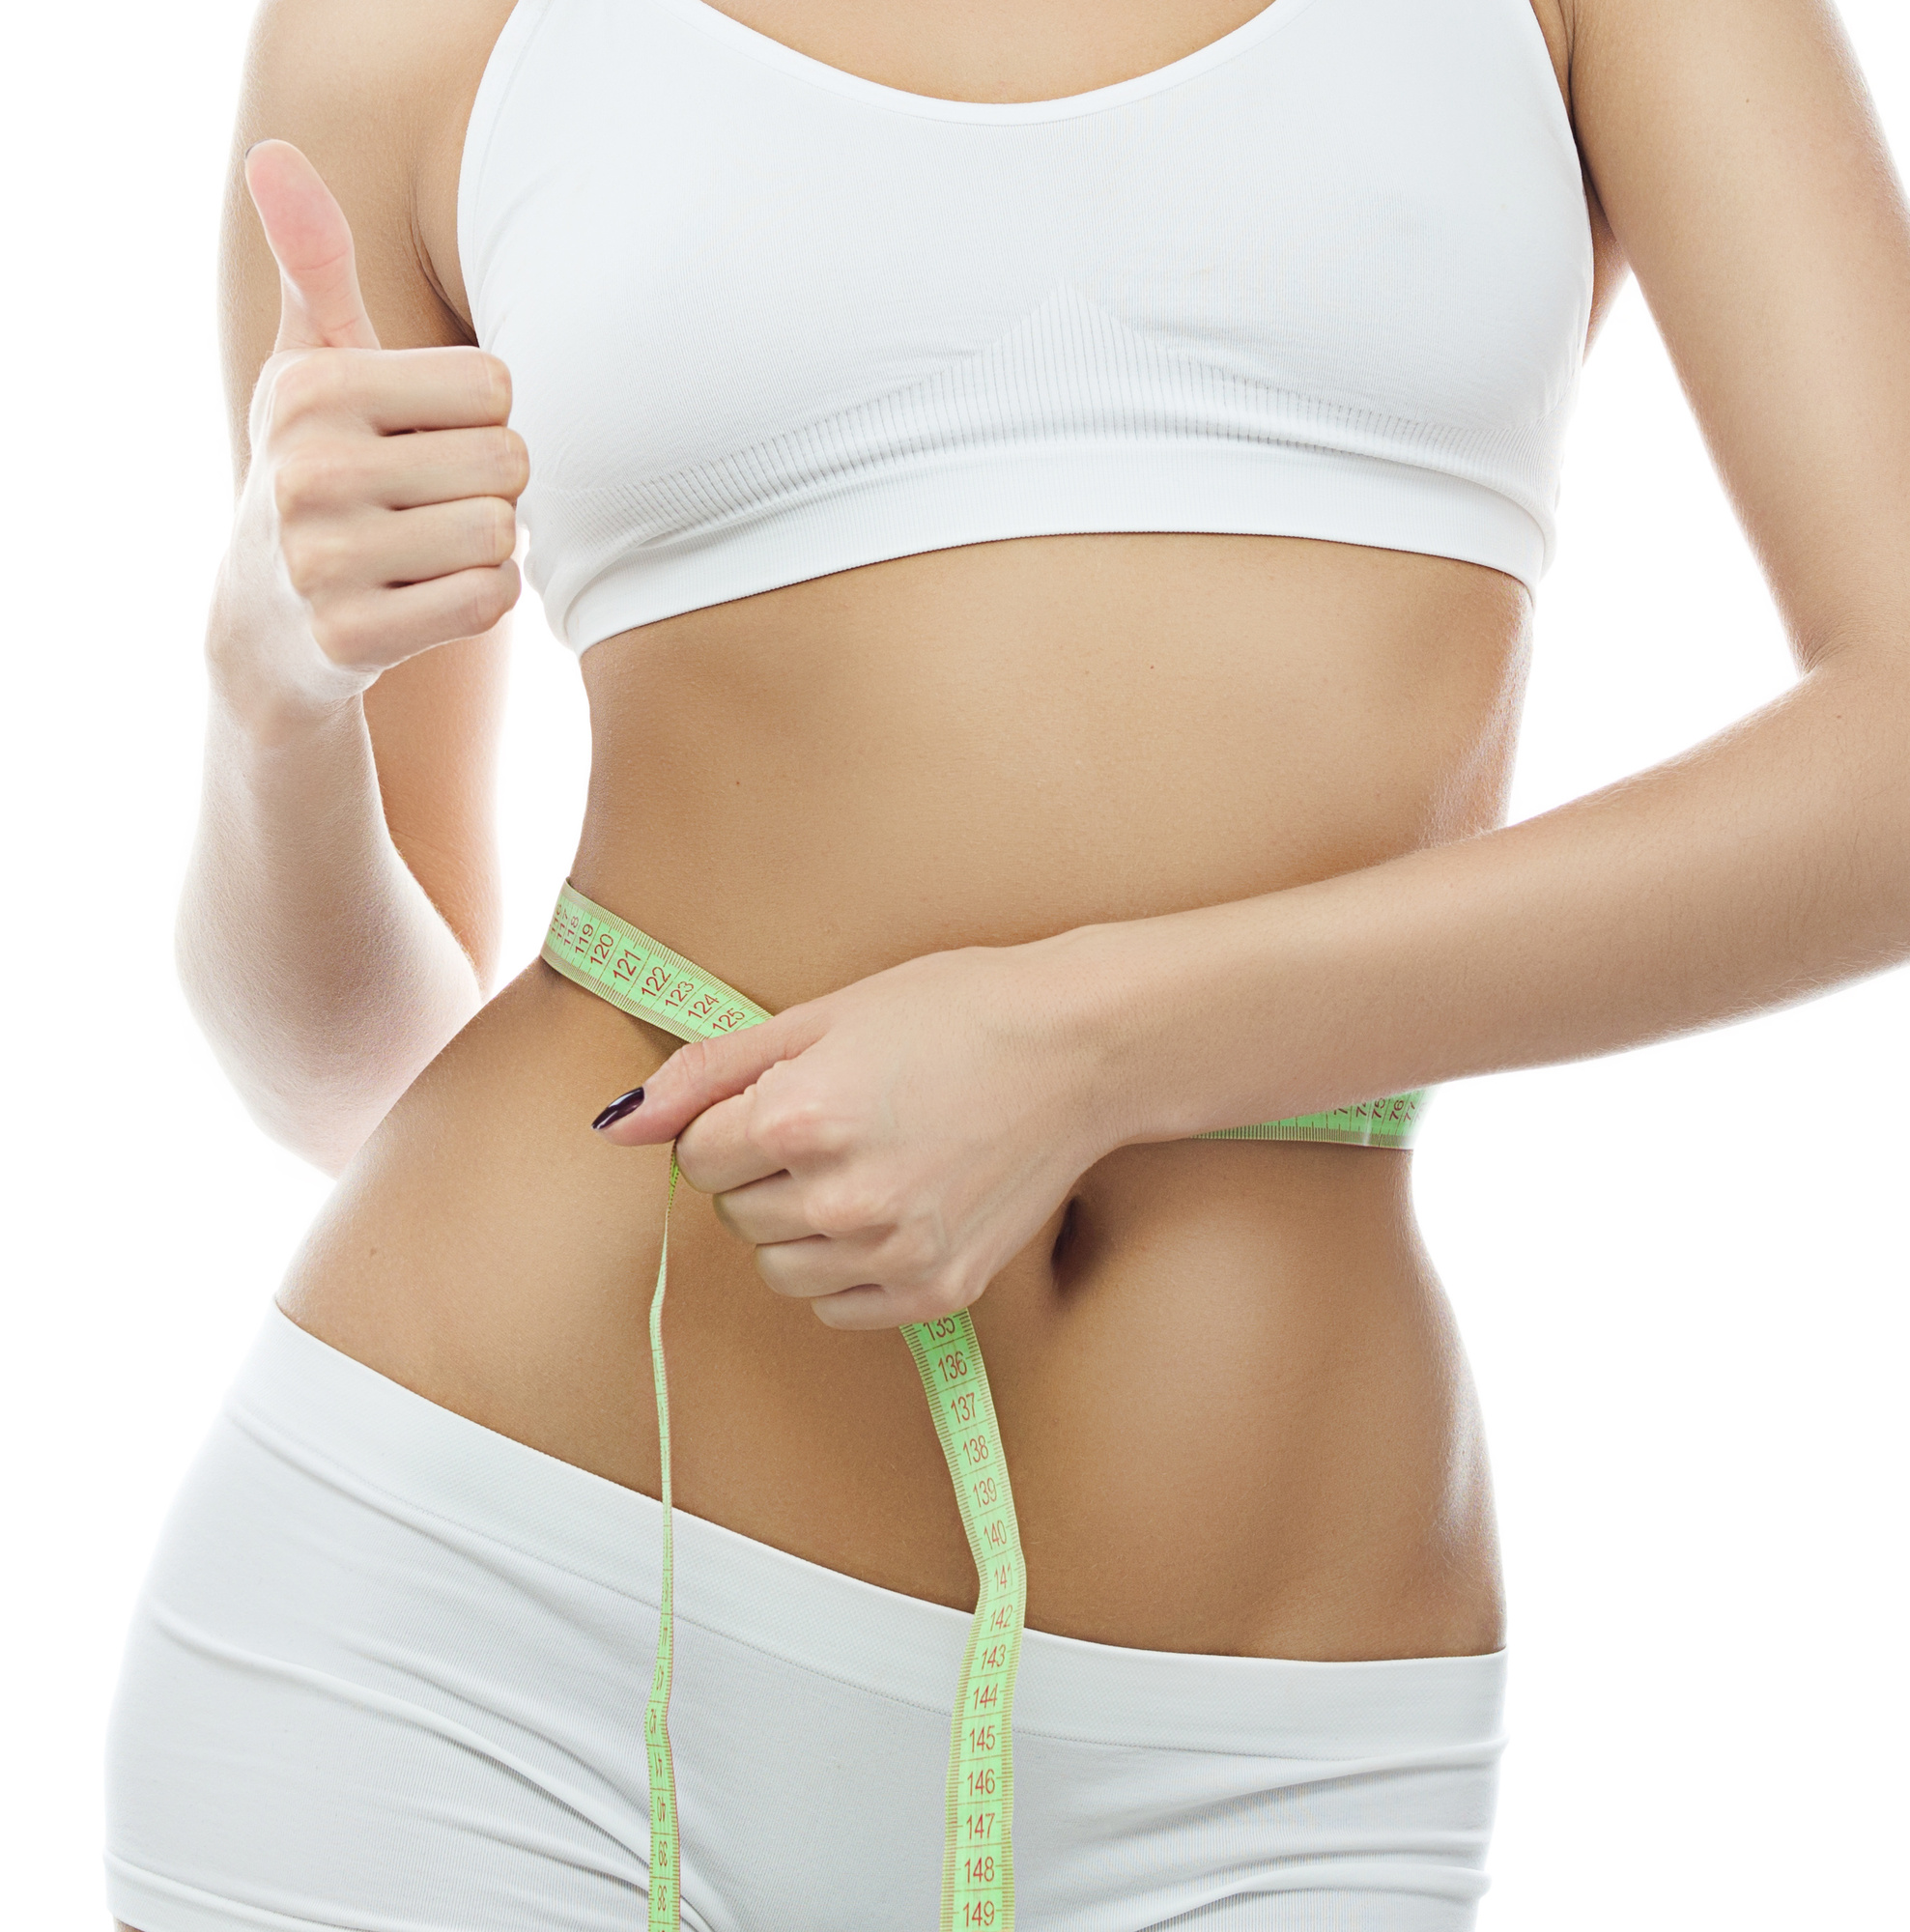 The Benefits Of Supervised Medical Weight Loss Programs Chirothin